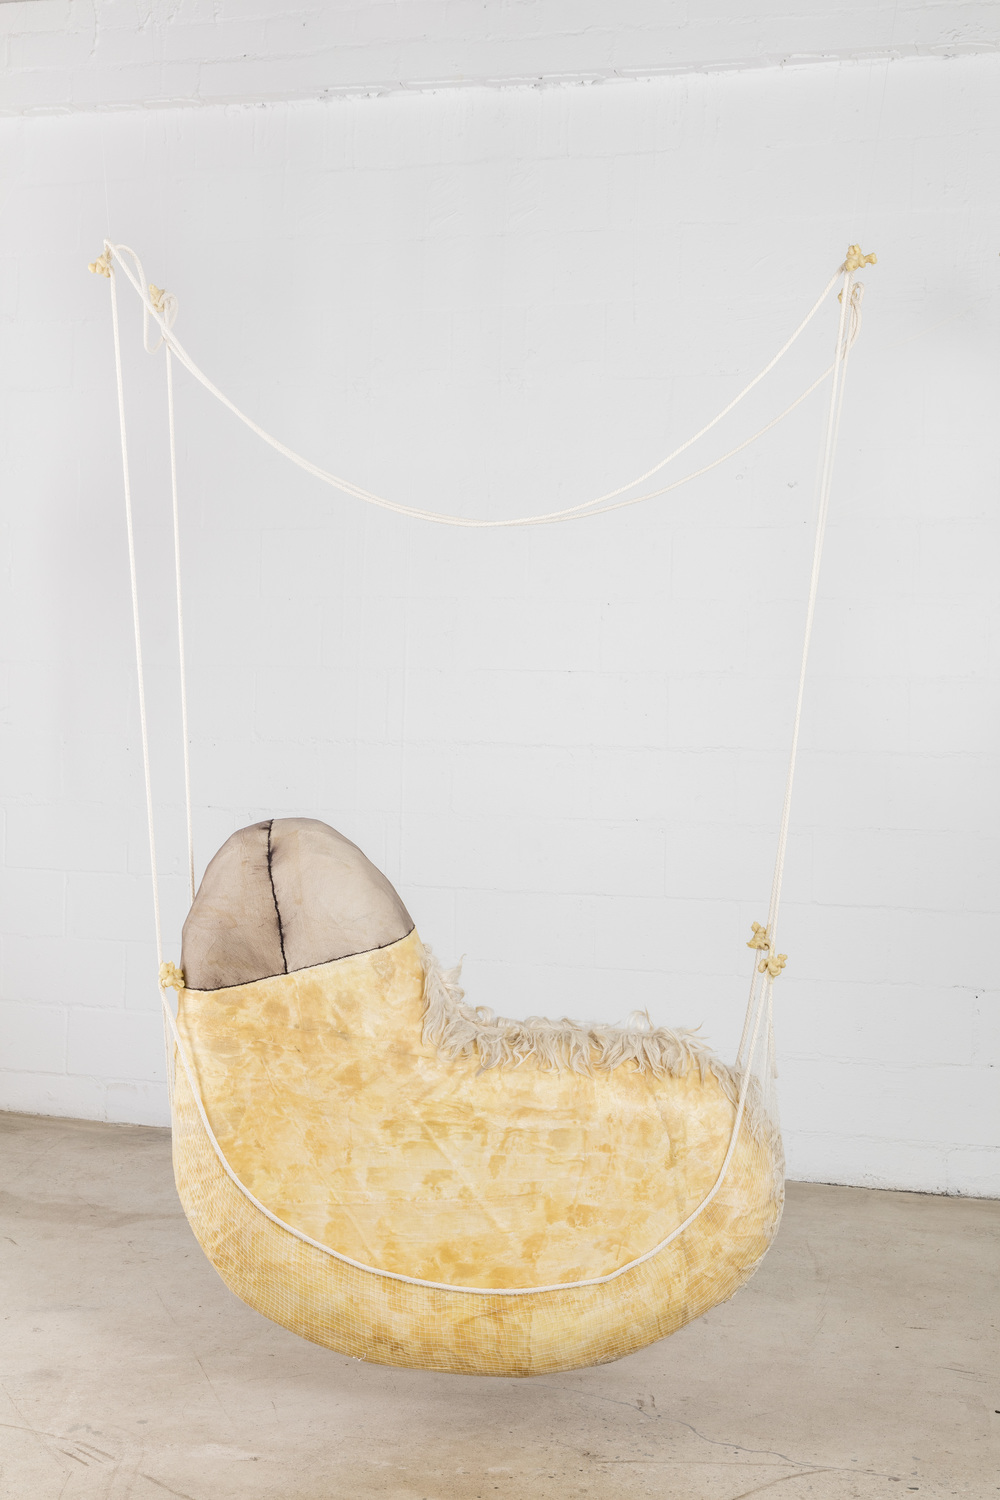 Tanya Aguiniga   Beasts of Burden , 2016  Cotton rope, cotton thread, foam, gauze, alpaca, nylon and beeswax  74 x 52 x 13 inches